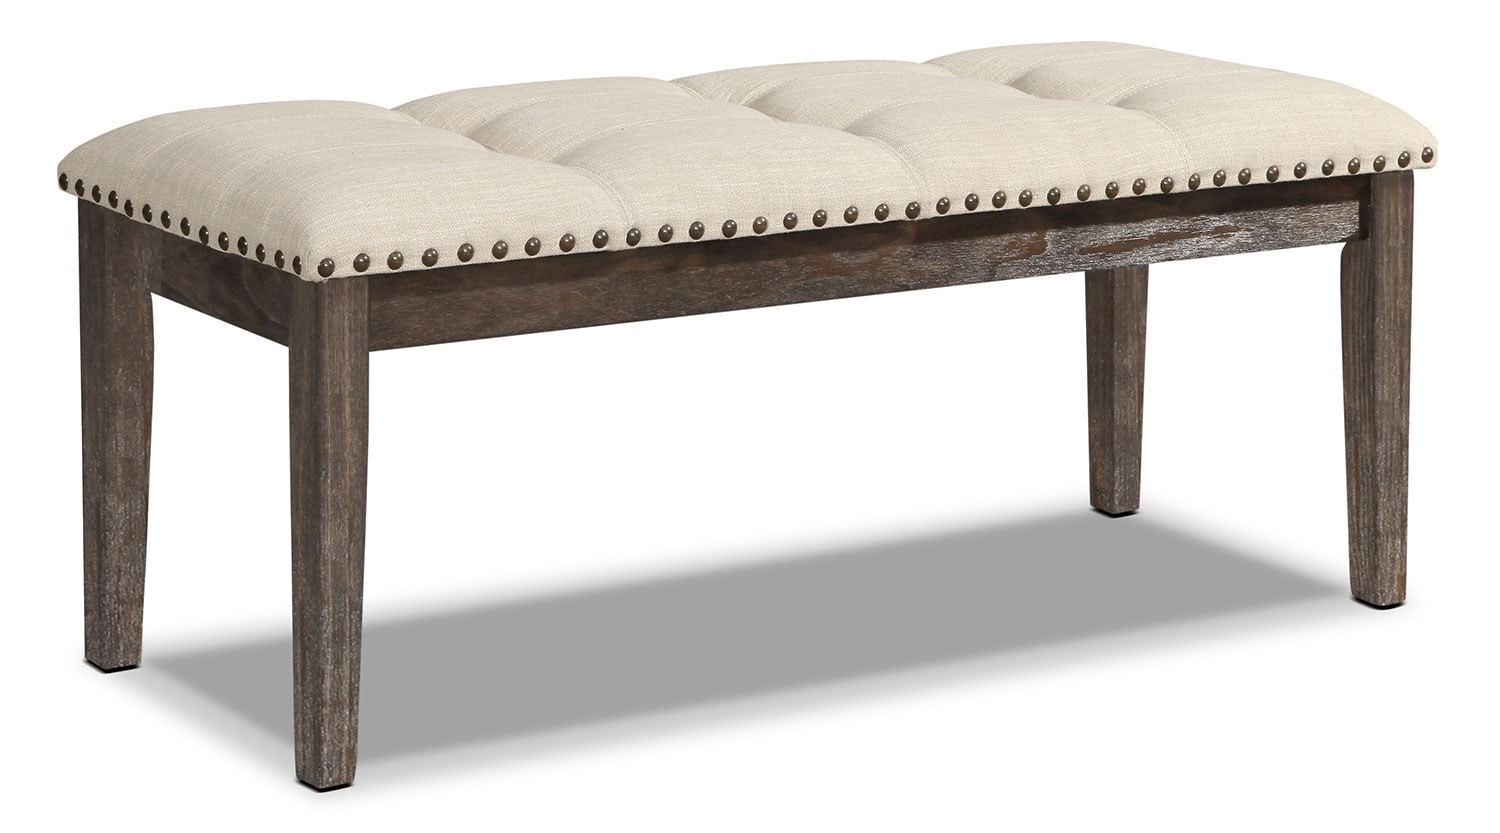 Dining Room Furniture - Aldo Dining Bench